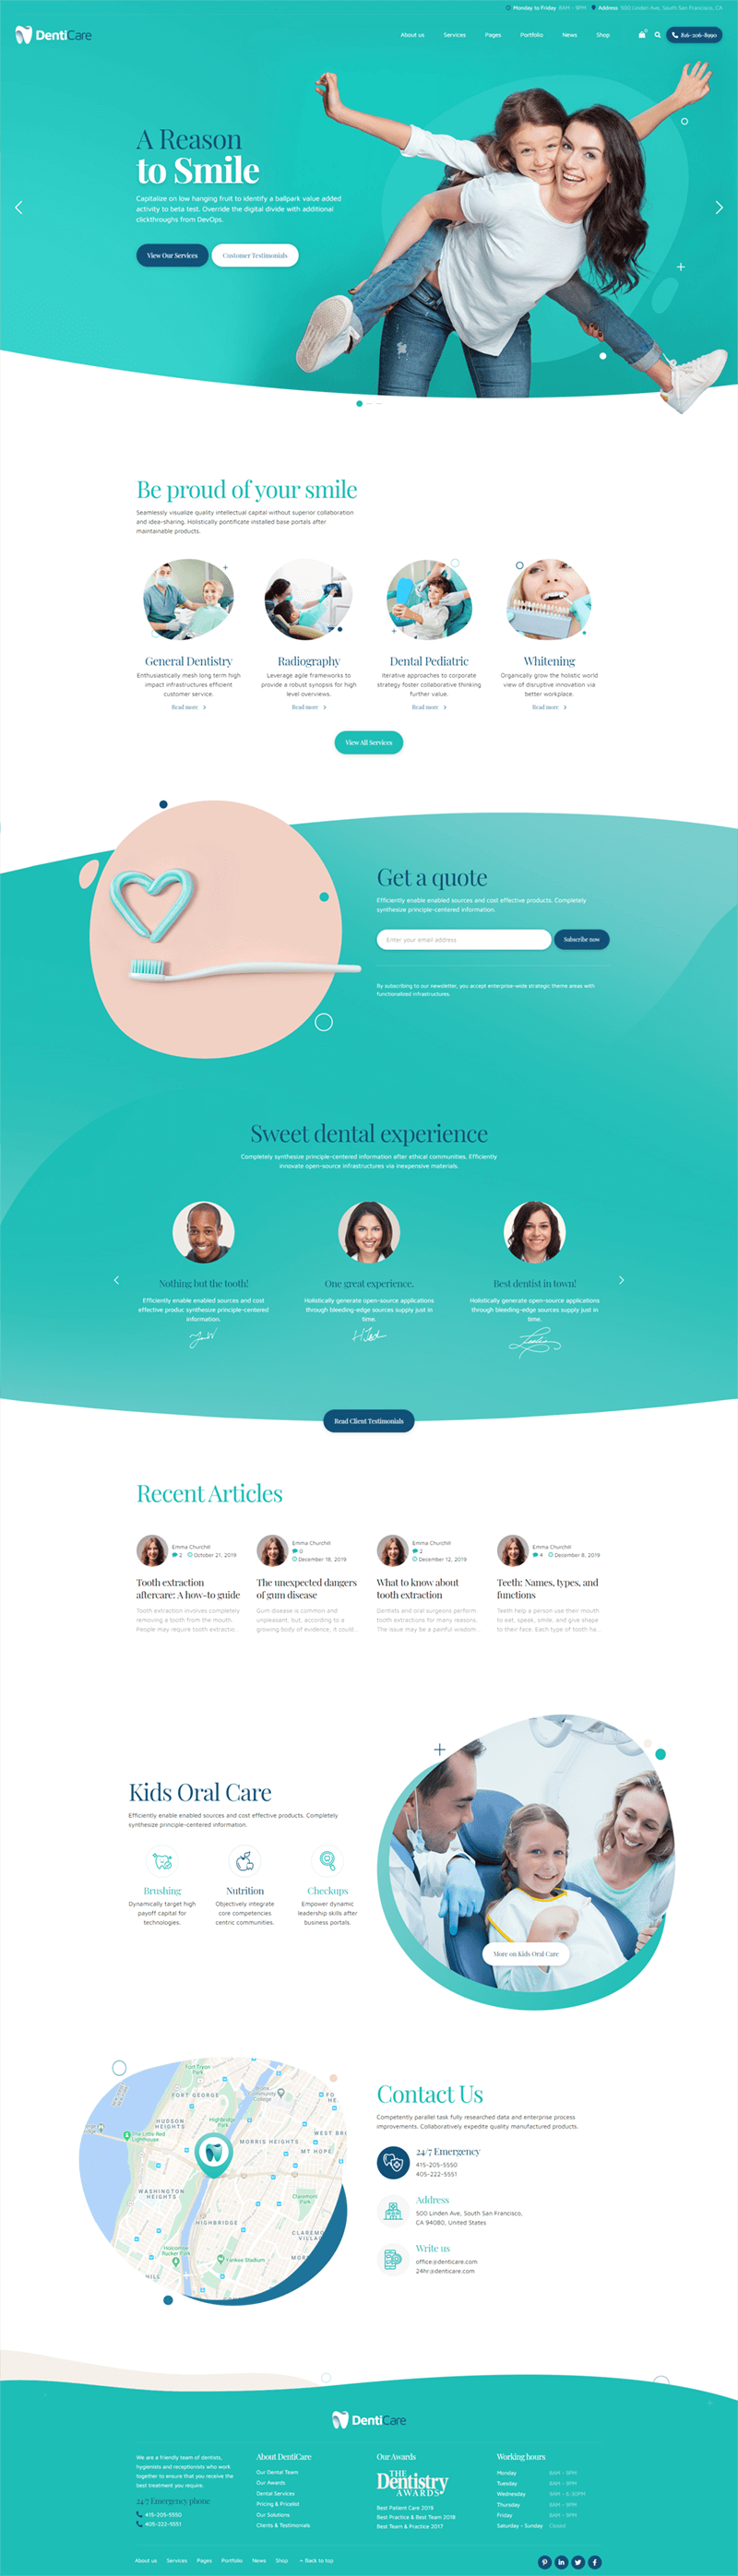 http://denticare.bold-themes.com/wp-content/uploads/2020/03/main_demo_michelle.png